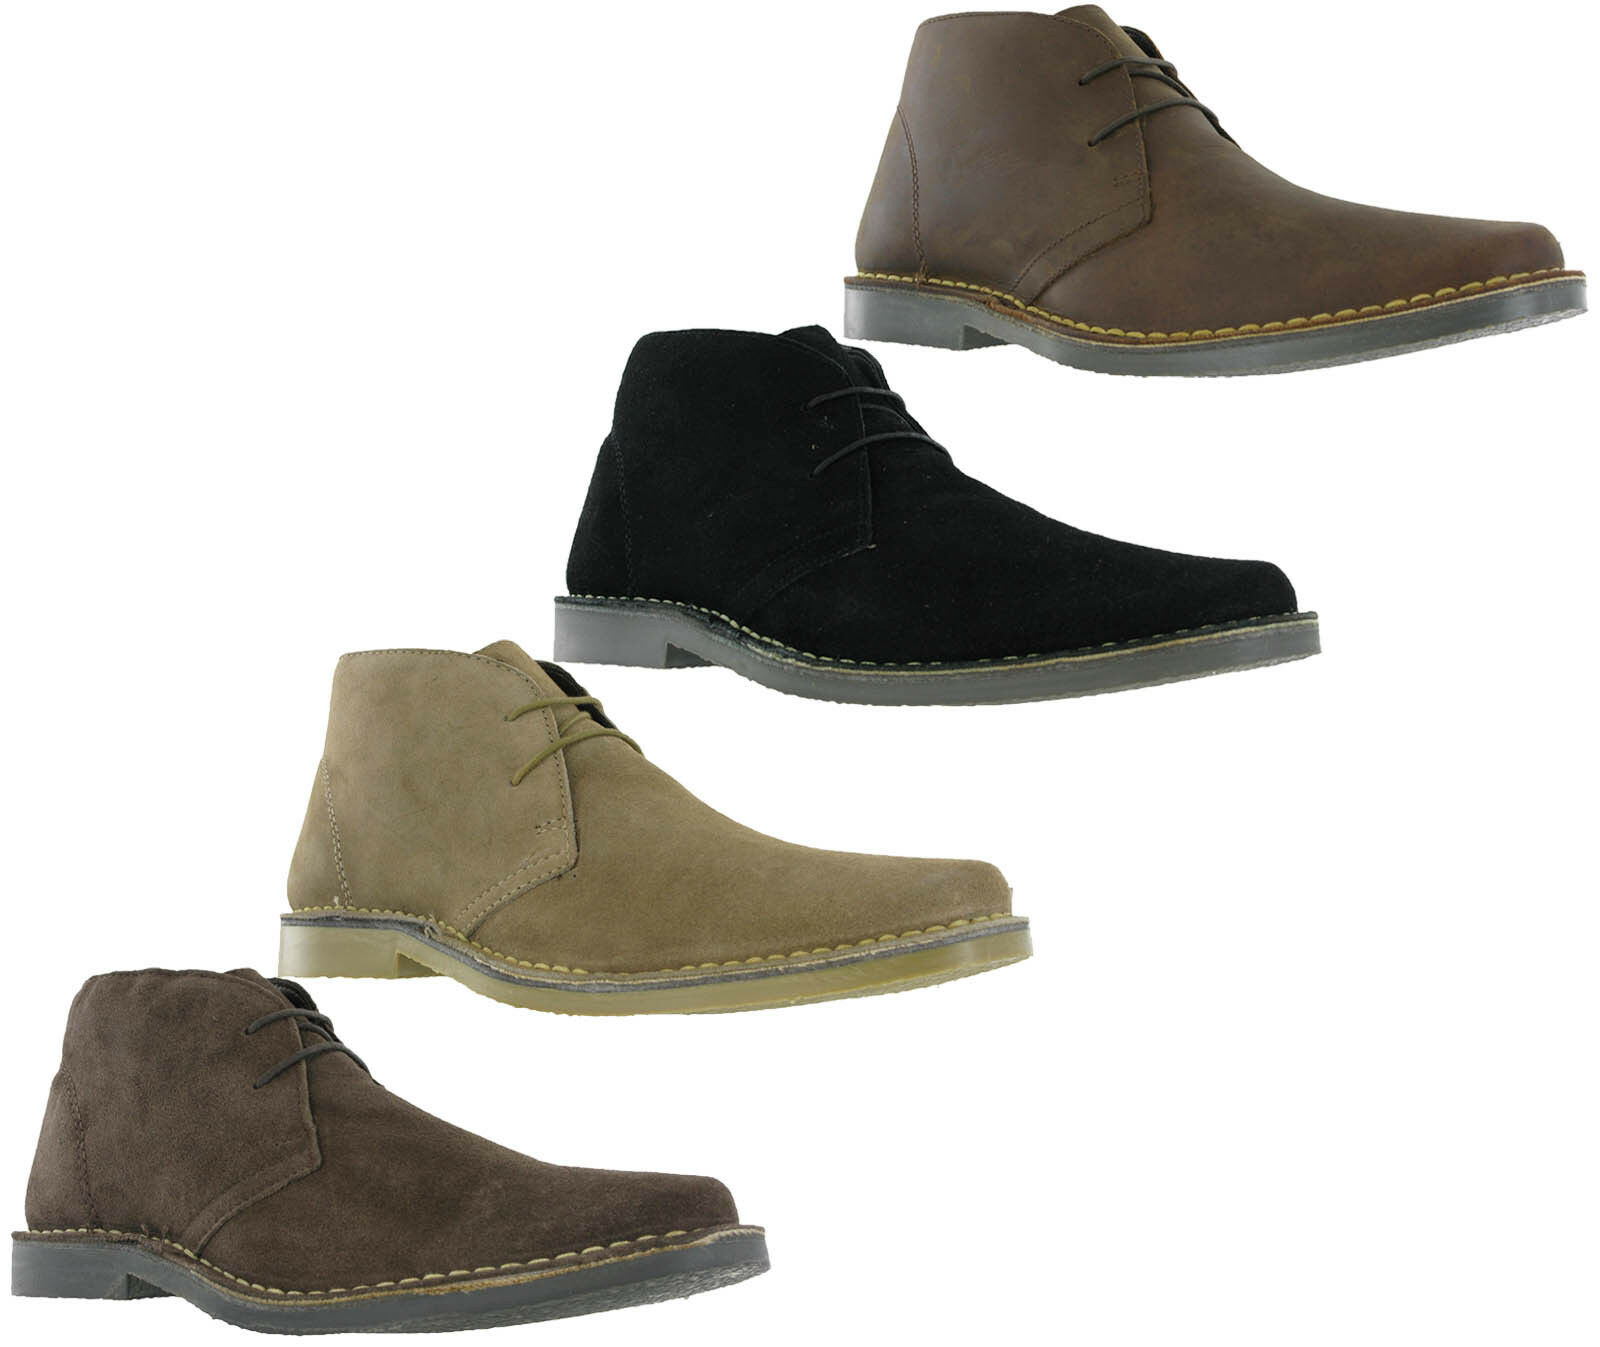 Roamers Mens Suede Leather 2 Eyelet Lace Up Chisel Toe Casual Desert Boots Sand